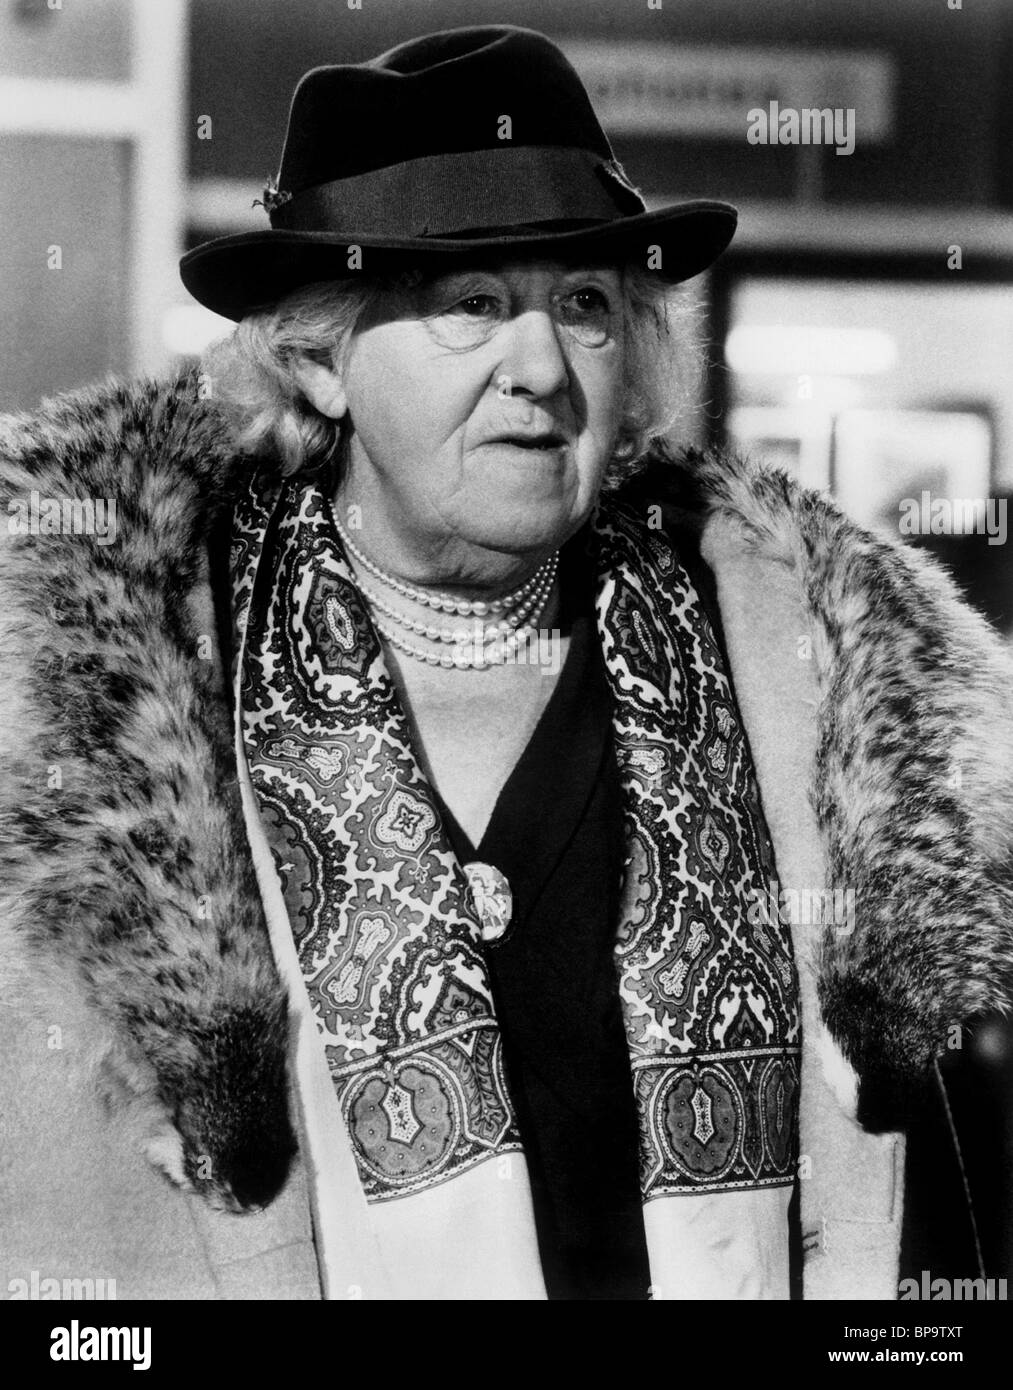 MARGARET RUTHERFORD V.I.P.S.; HOTEL INTERNATIONAL (1963) Stockbild